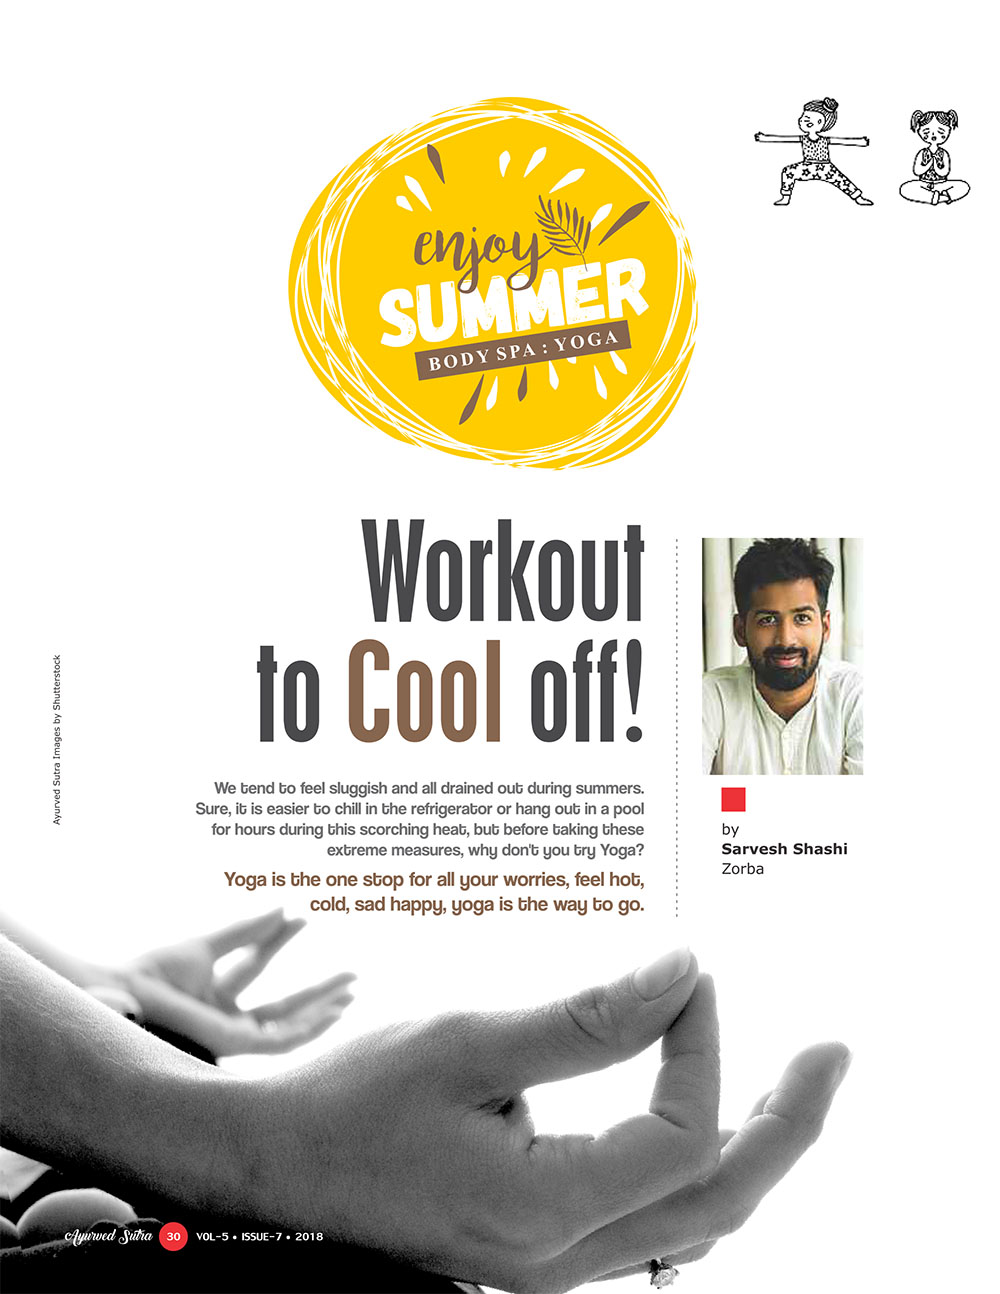 Ayurvedsutra Vol 05 issue 07 32 - Workout to Cool off!